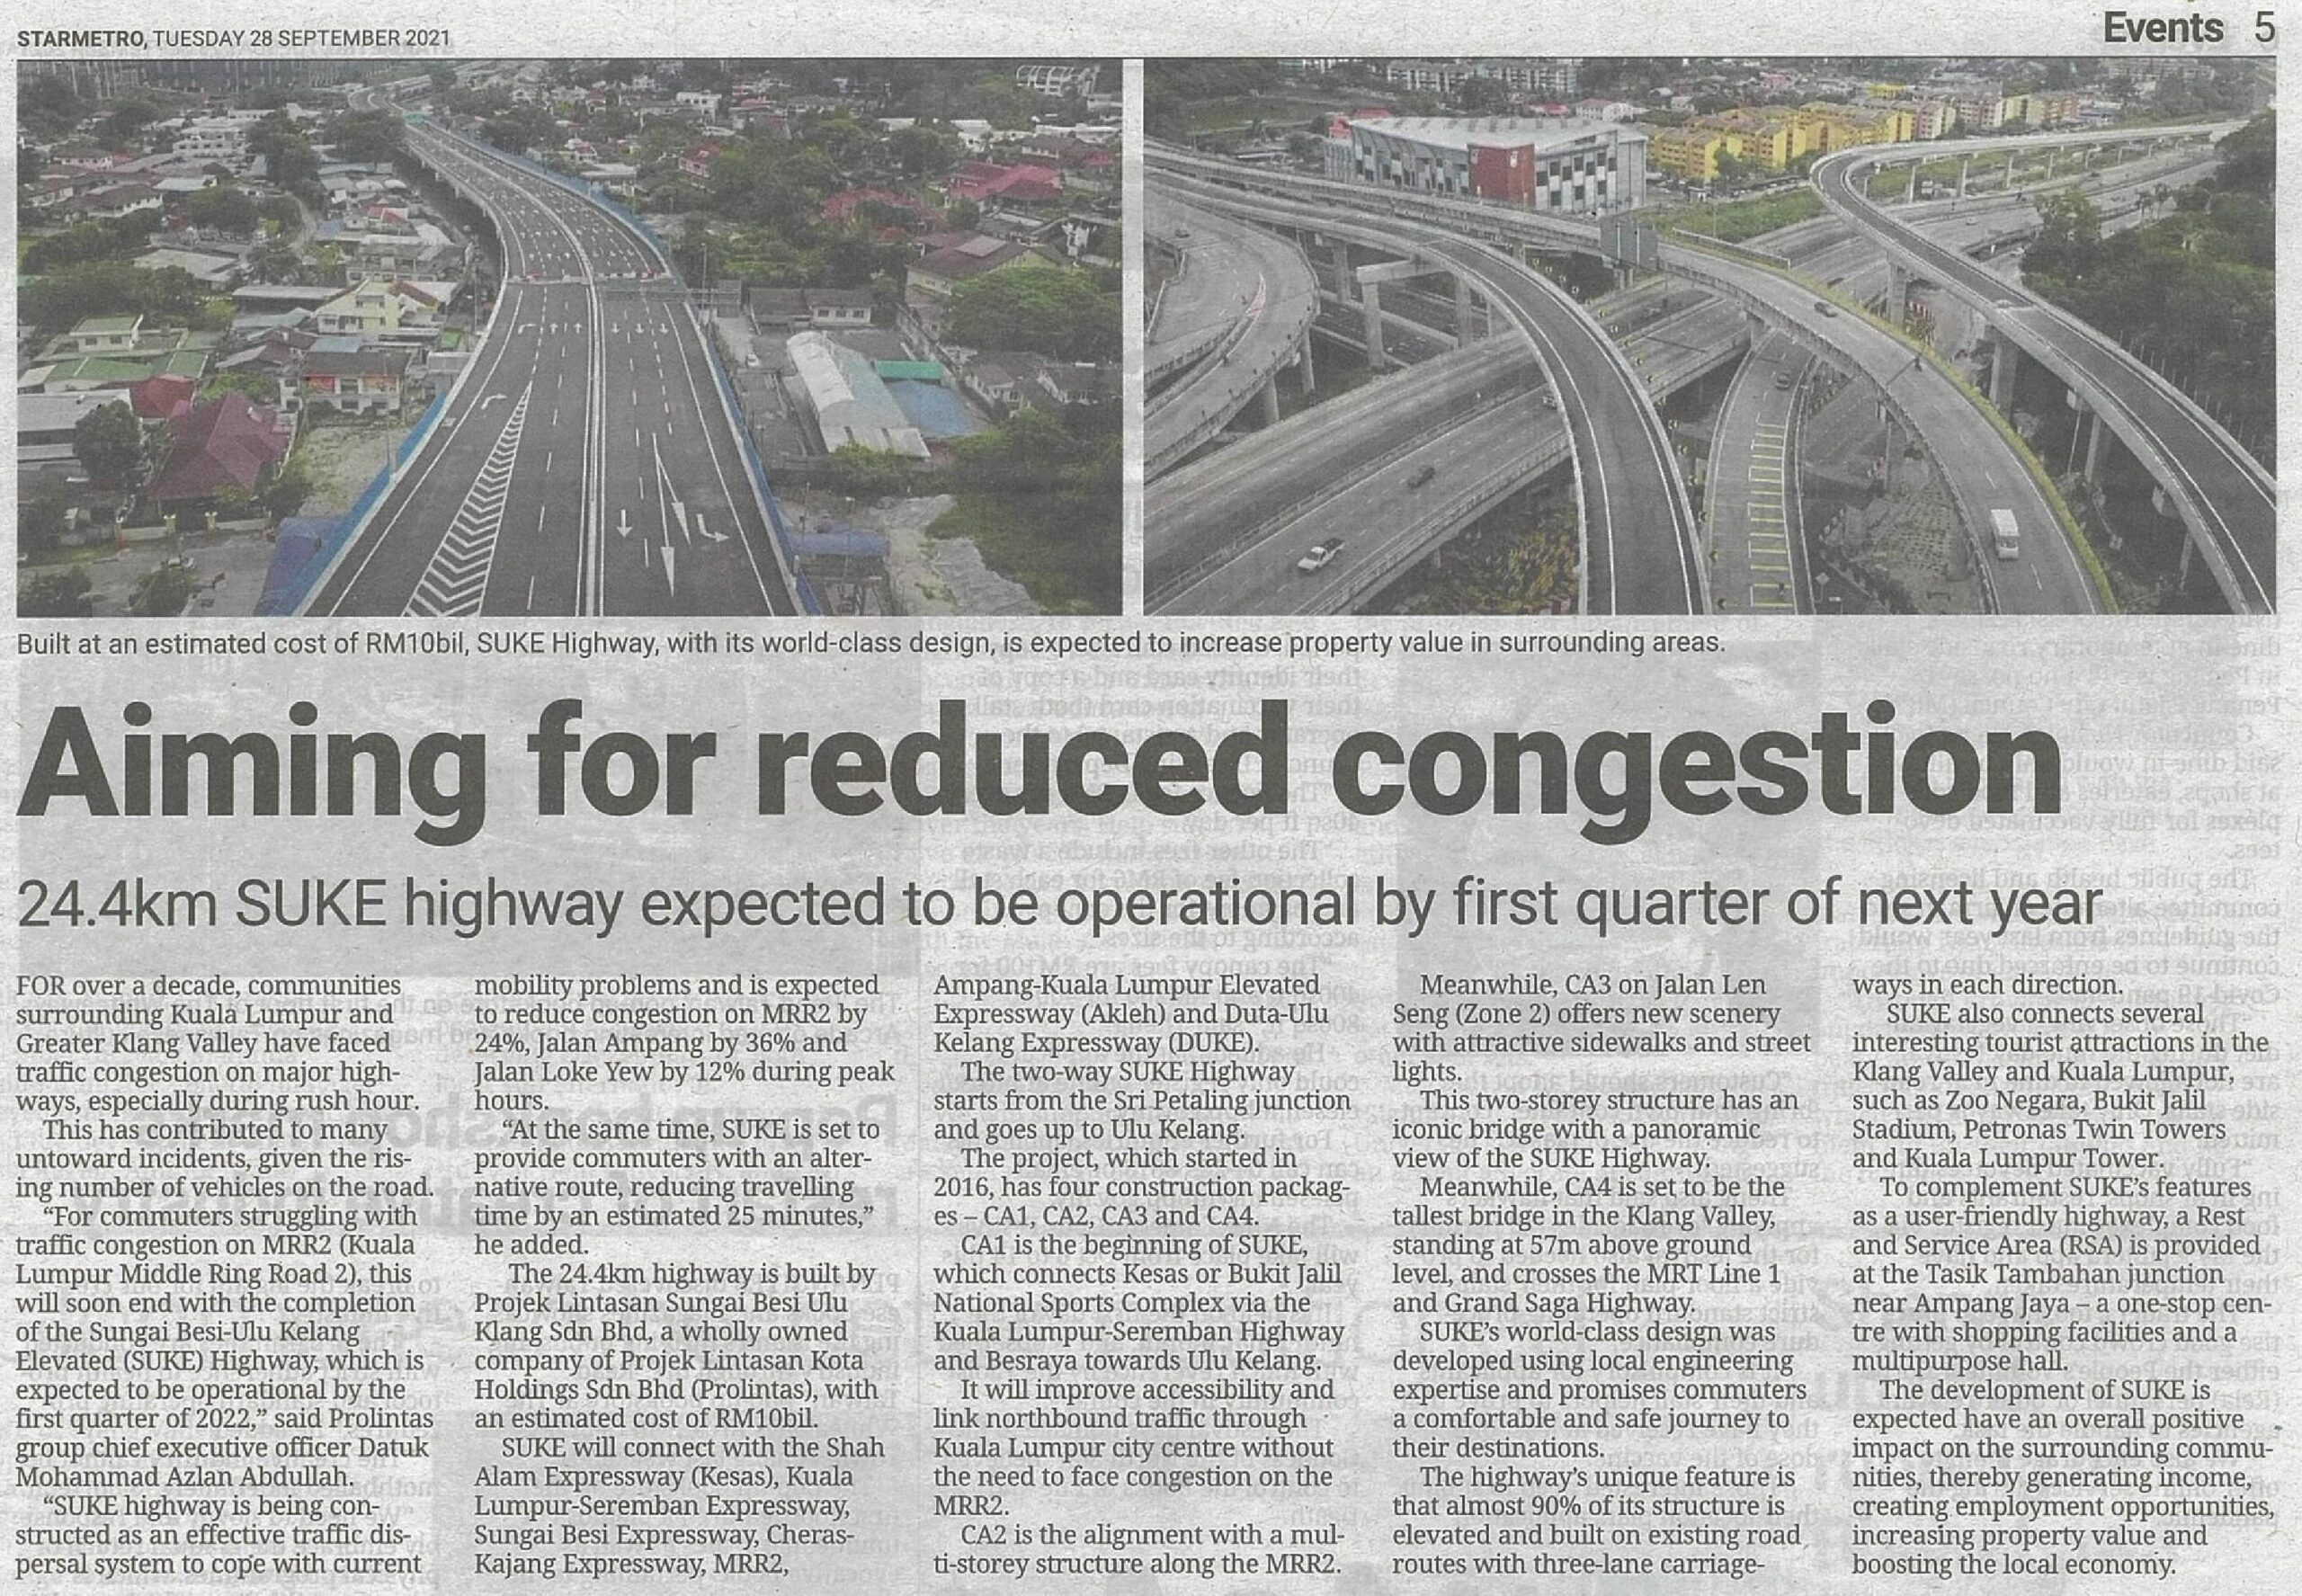 SUKE aiming for reduced congestion